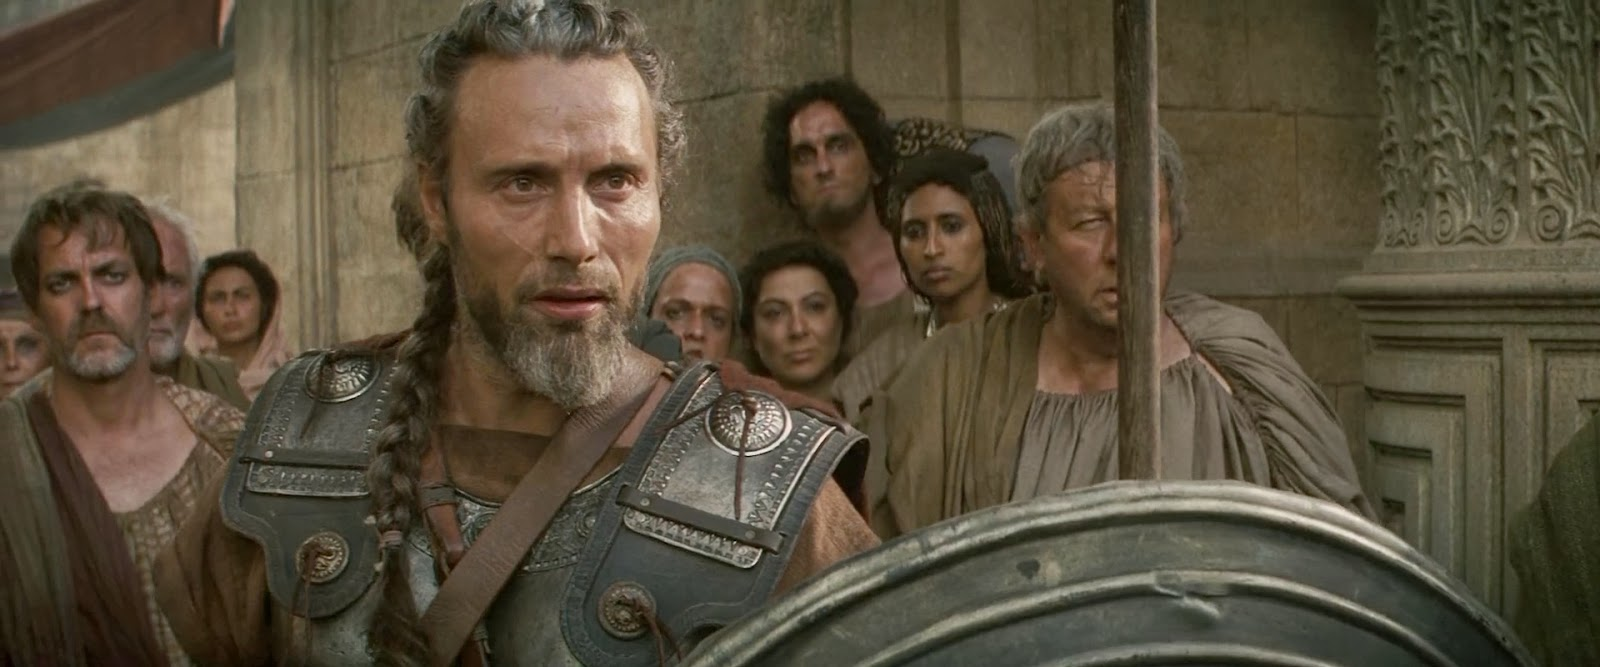 Clash of the Titans (2010) S4 s Clash of the Titans (2010)